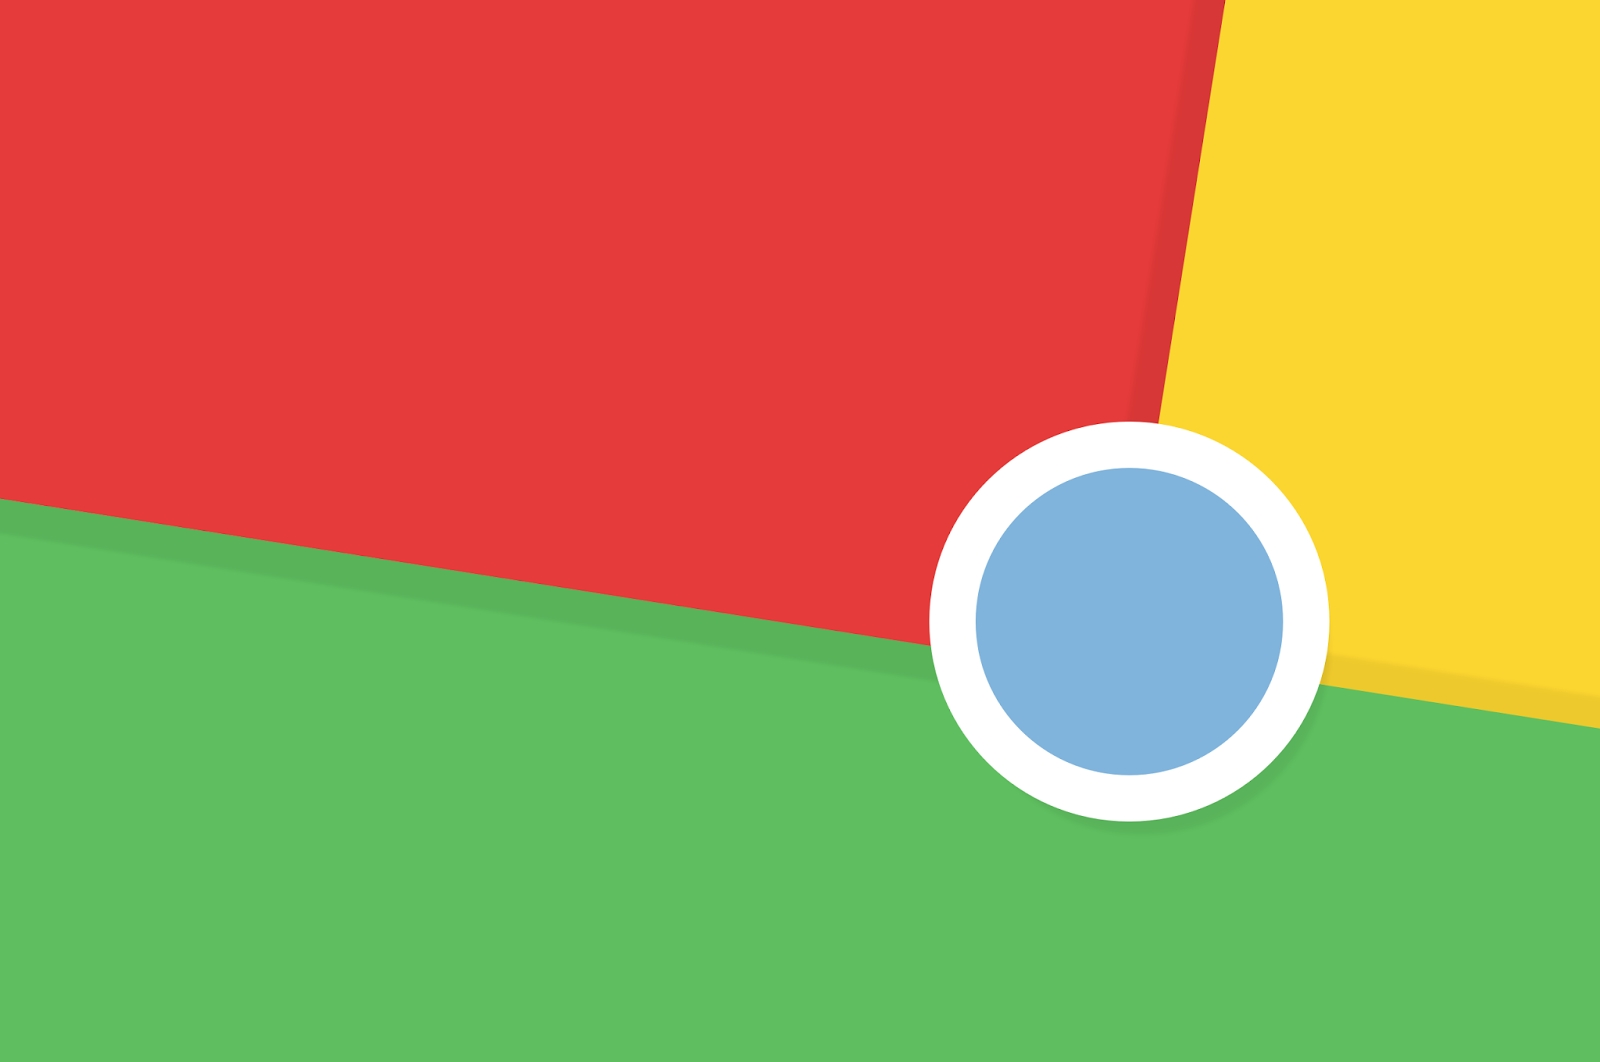 google chrome logotipo principal em wallpaper